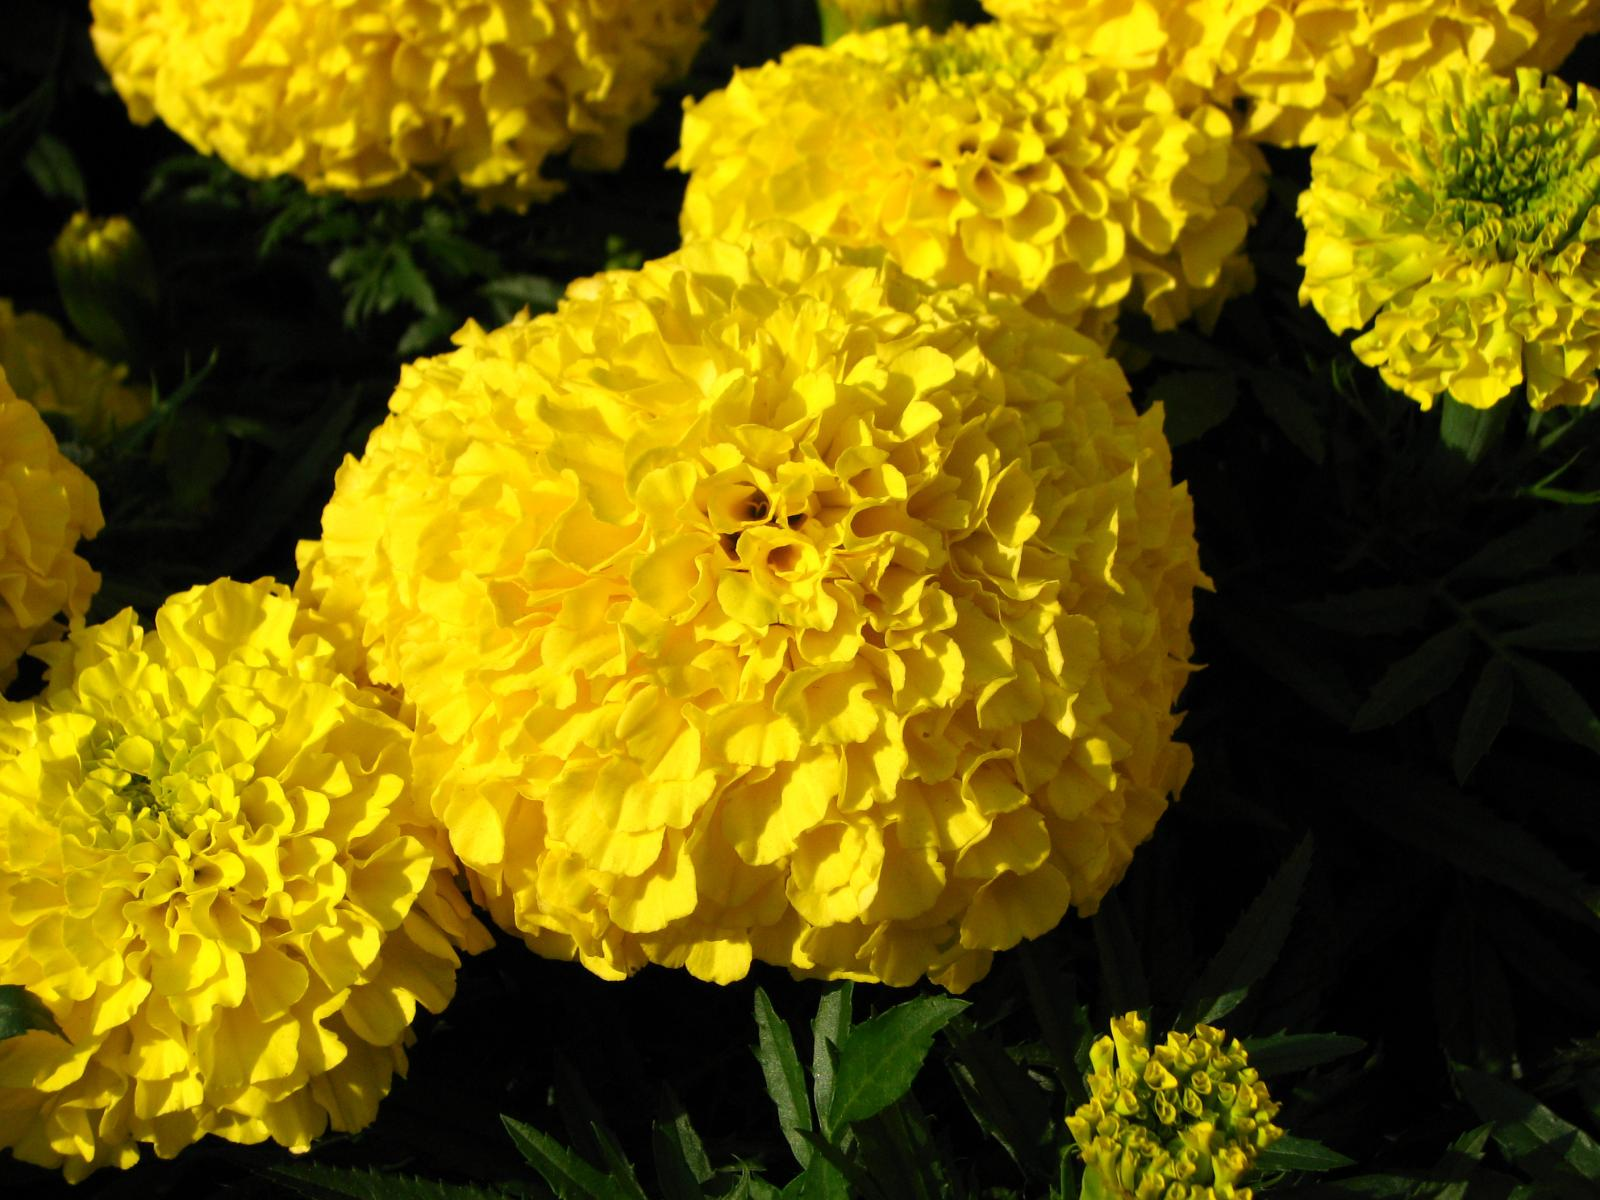 Mexican marigold  Tagetes erecta   flowers   Feedipedia Mexican marigold  Tagetes erecta   flowers